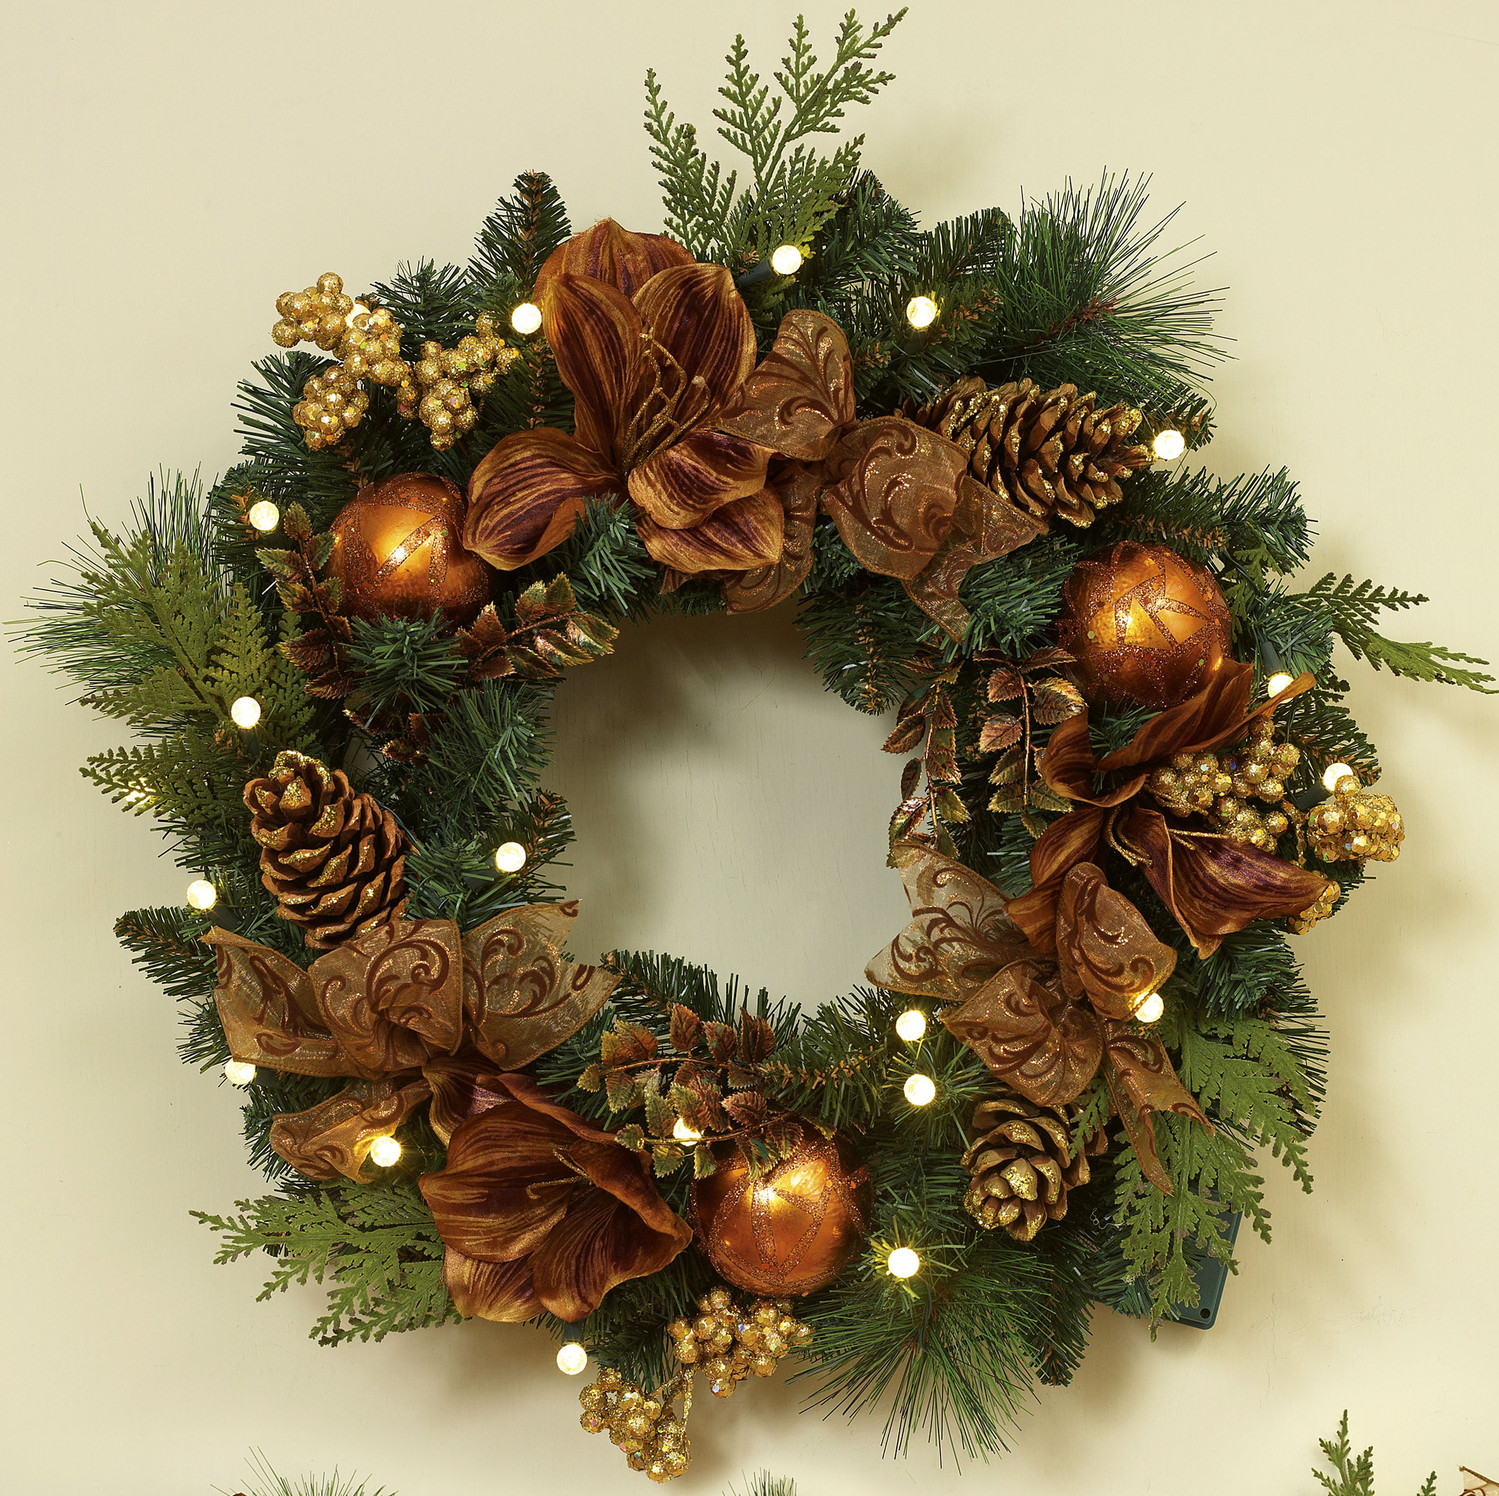 Fresh Ideas to Make Your Own Christmas Decorations | CloneDVD Blog